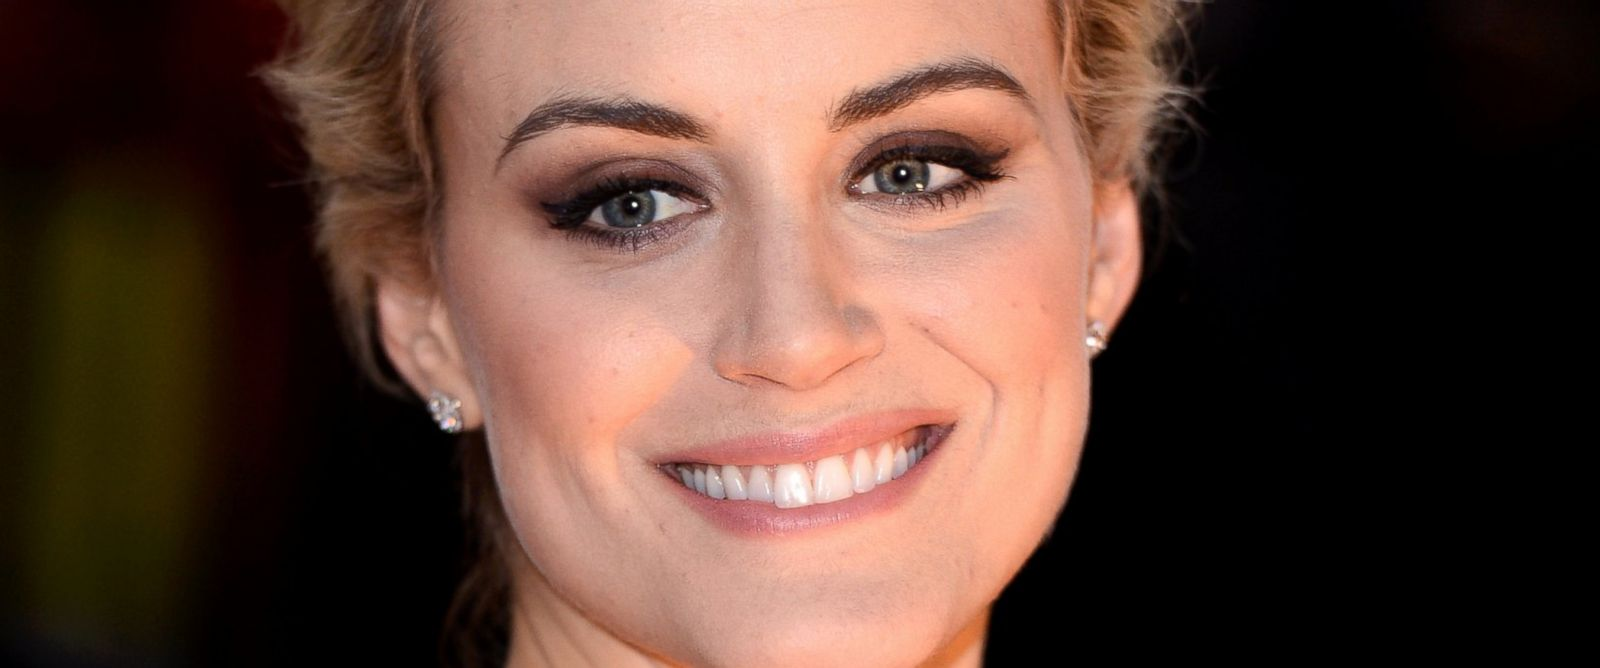 PHOTO: Taylor Schilling attends the Glamour Women of the Year Awards at Berkeley Square Gardens on June 3, 2014 in London, England.